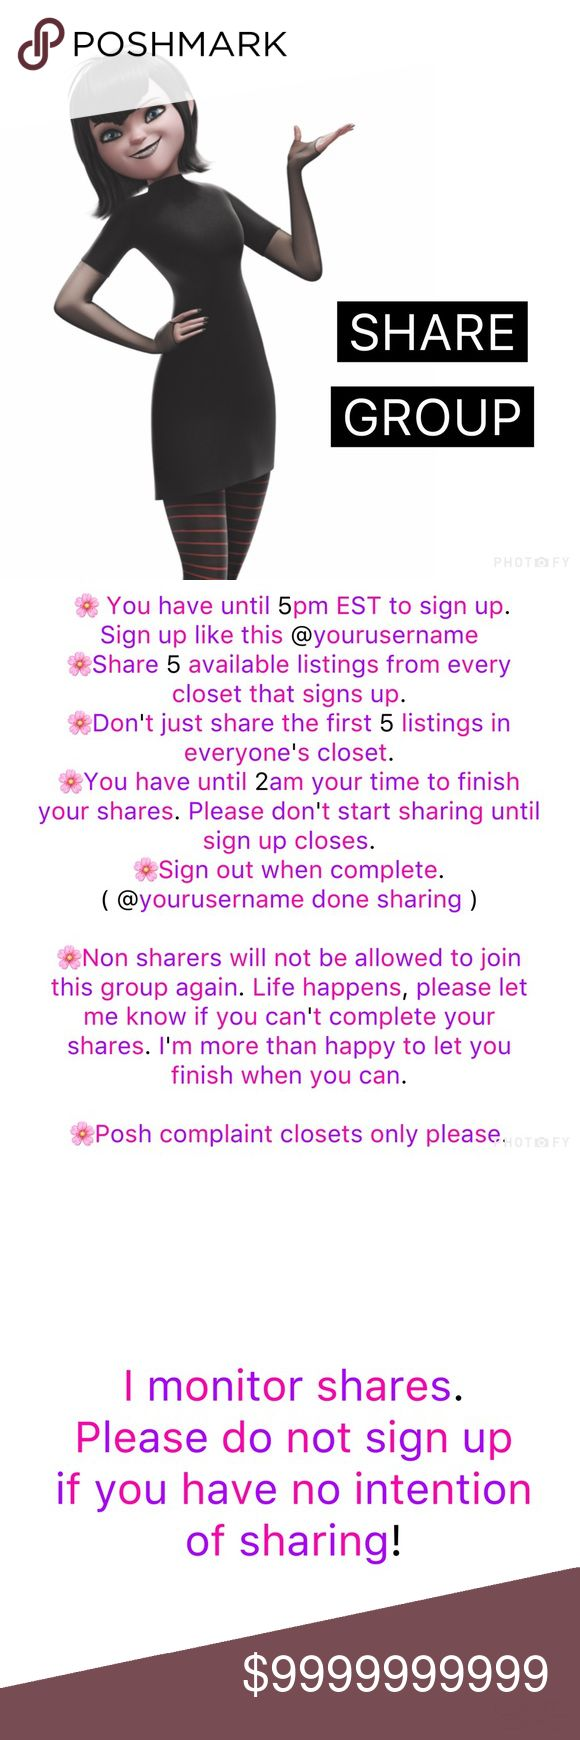 🖤 MONDAY (9/4) Share Group *This is for Monday (9/04)  *Sign in by tagging your username in the comments, not by liking this post. *Sign up closes at 5pm eastern time.  *Share 5 available listings from each closet that signs up.  *Feel free to request what you would like shared.  *No sharing until group is closed. *Please share this listing so others can see.   *Let me know what female character you would love to see next. Today's character is Mavis from Hotel Transylvania. Other